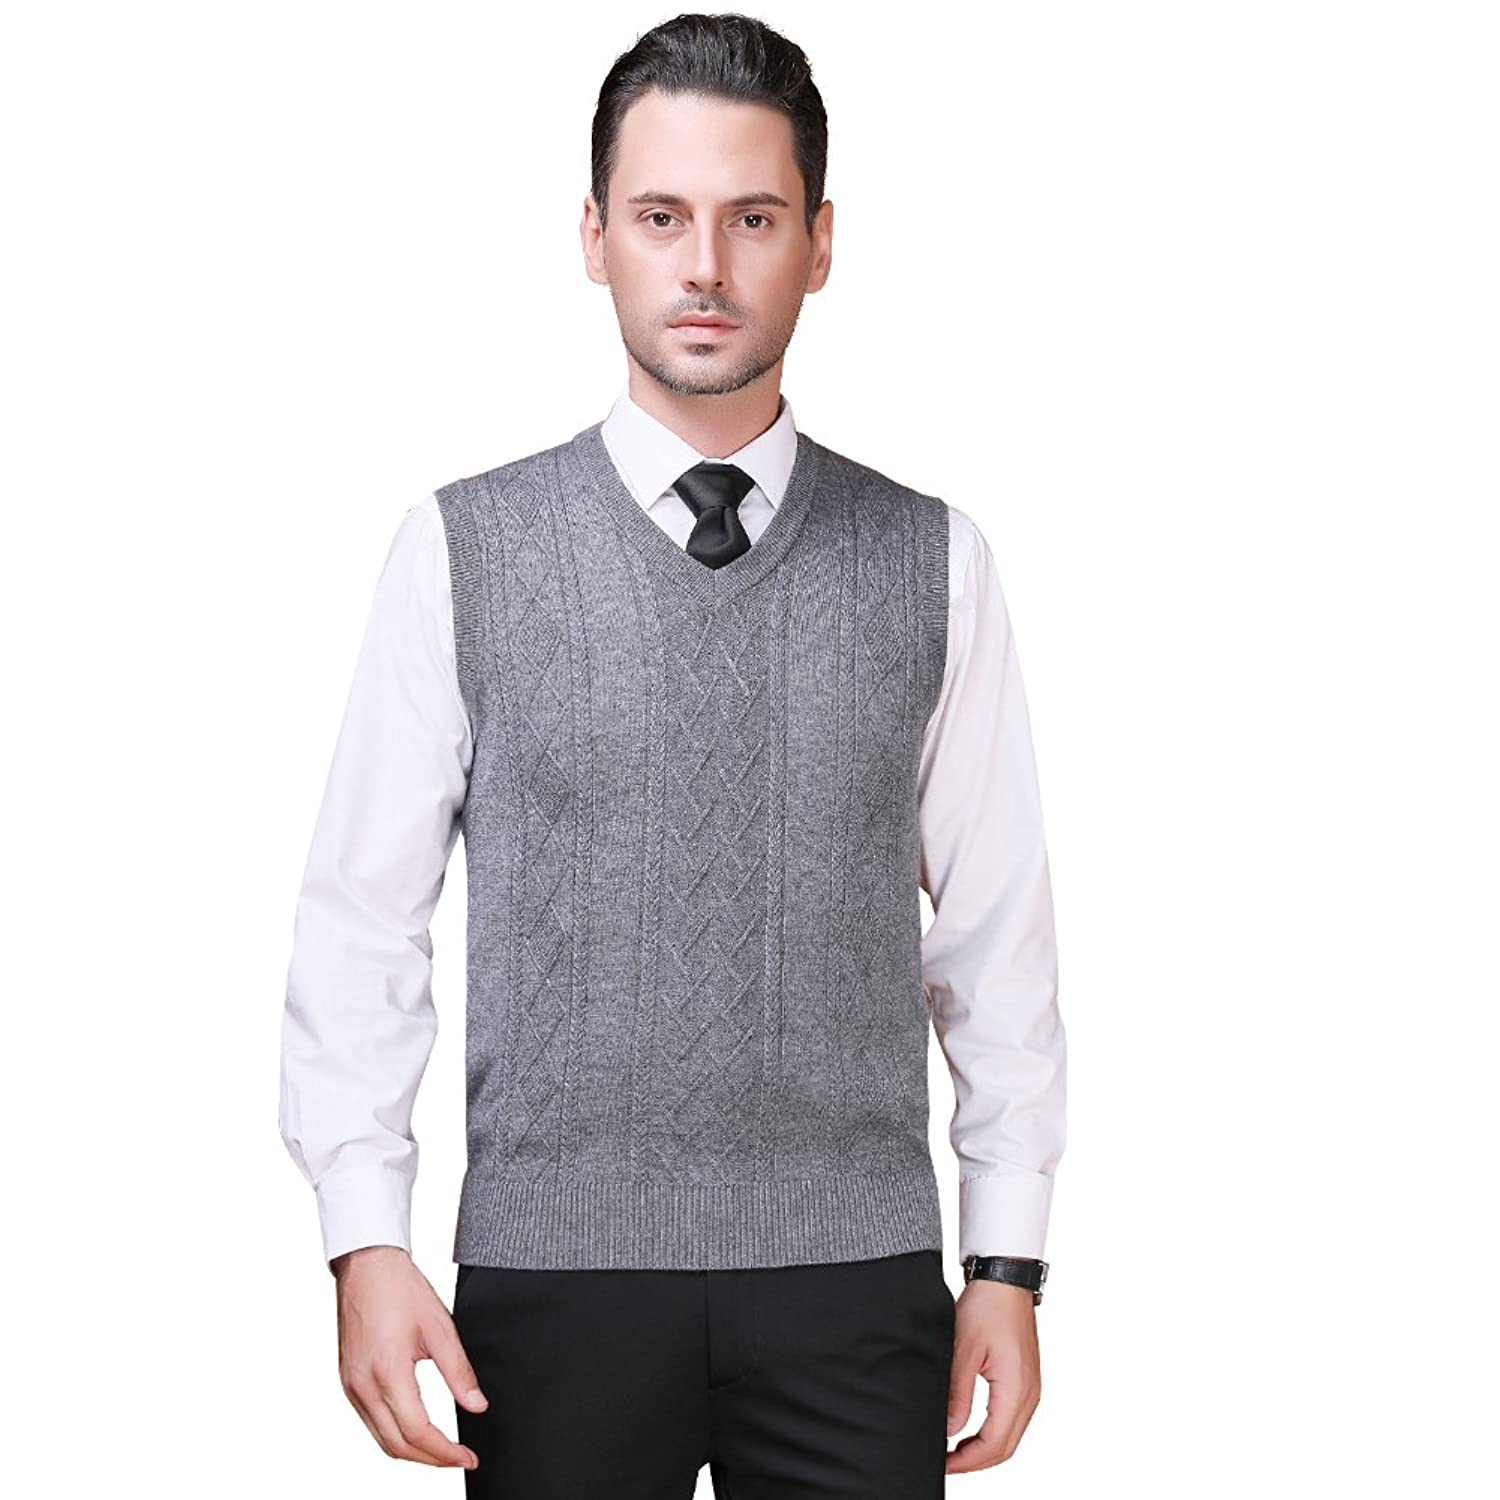 Men's Vintage Vests, Sweater Vests Zicac Mens V-Neck Sleeveless Vest Classic Britsh Style Business Gentleman Knitwear Knitted Waistcoat Sweater Cardigans Tank Tops Gilet  AT vintagedancer.com